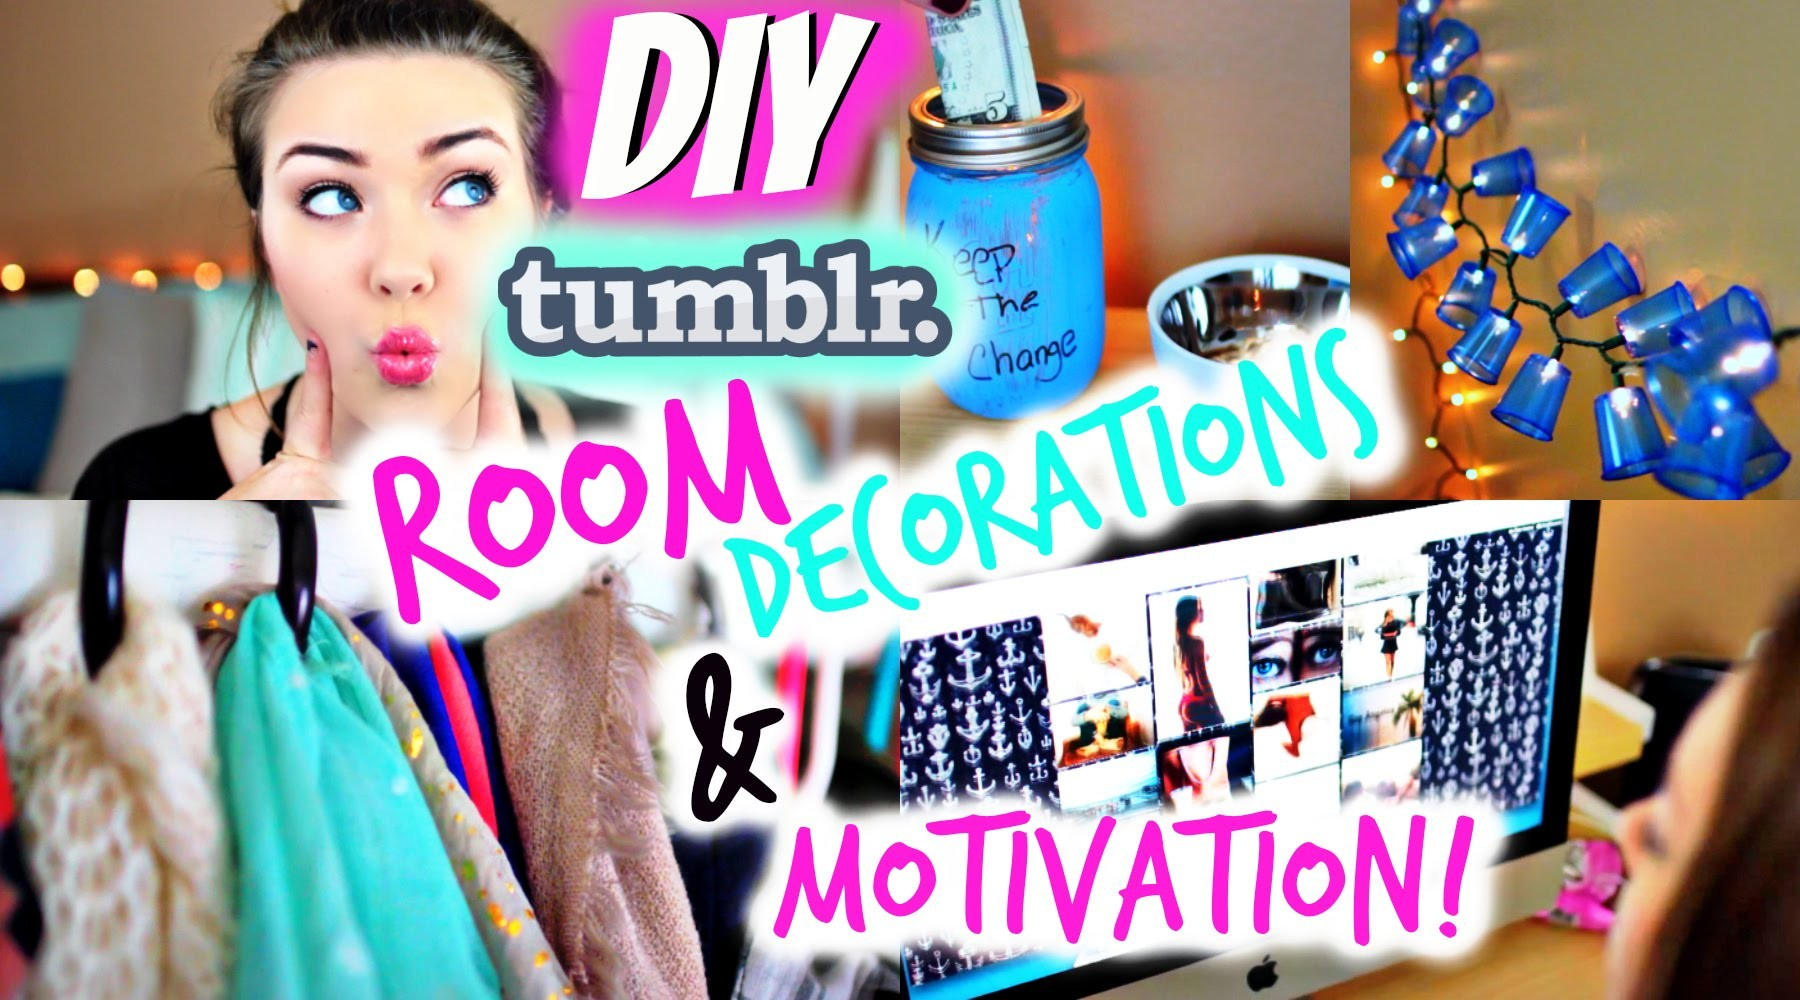 DIY Tumblr Room Decorations & Motivation For 2015!